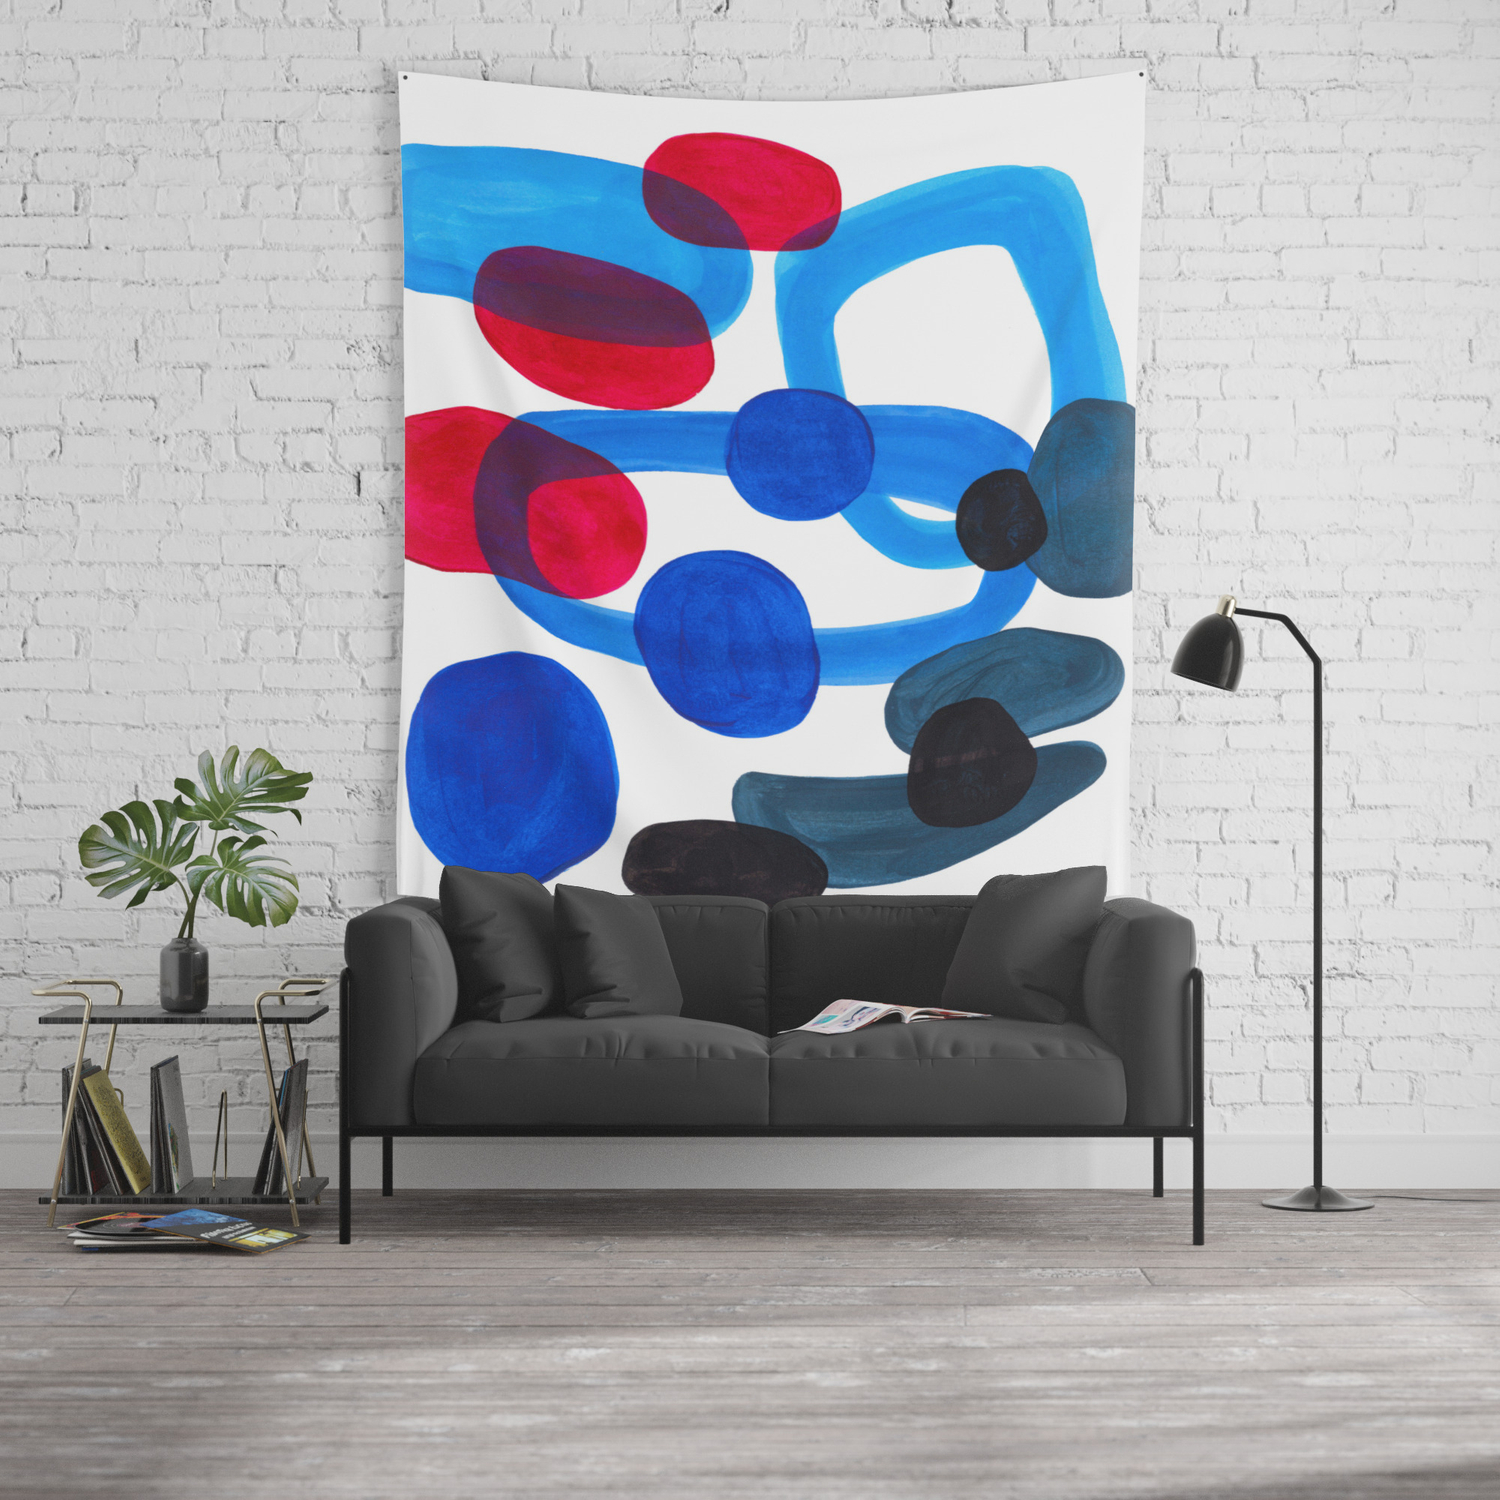 Abstract Minimalist Mid Century Modern Colorful Pop Art Retro Funky Shapes Blue Turquoise Wall Tapestry